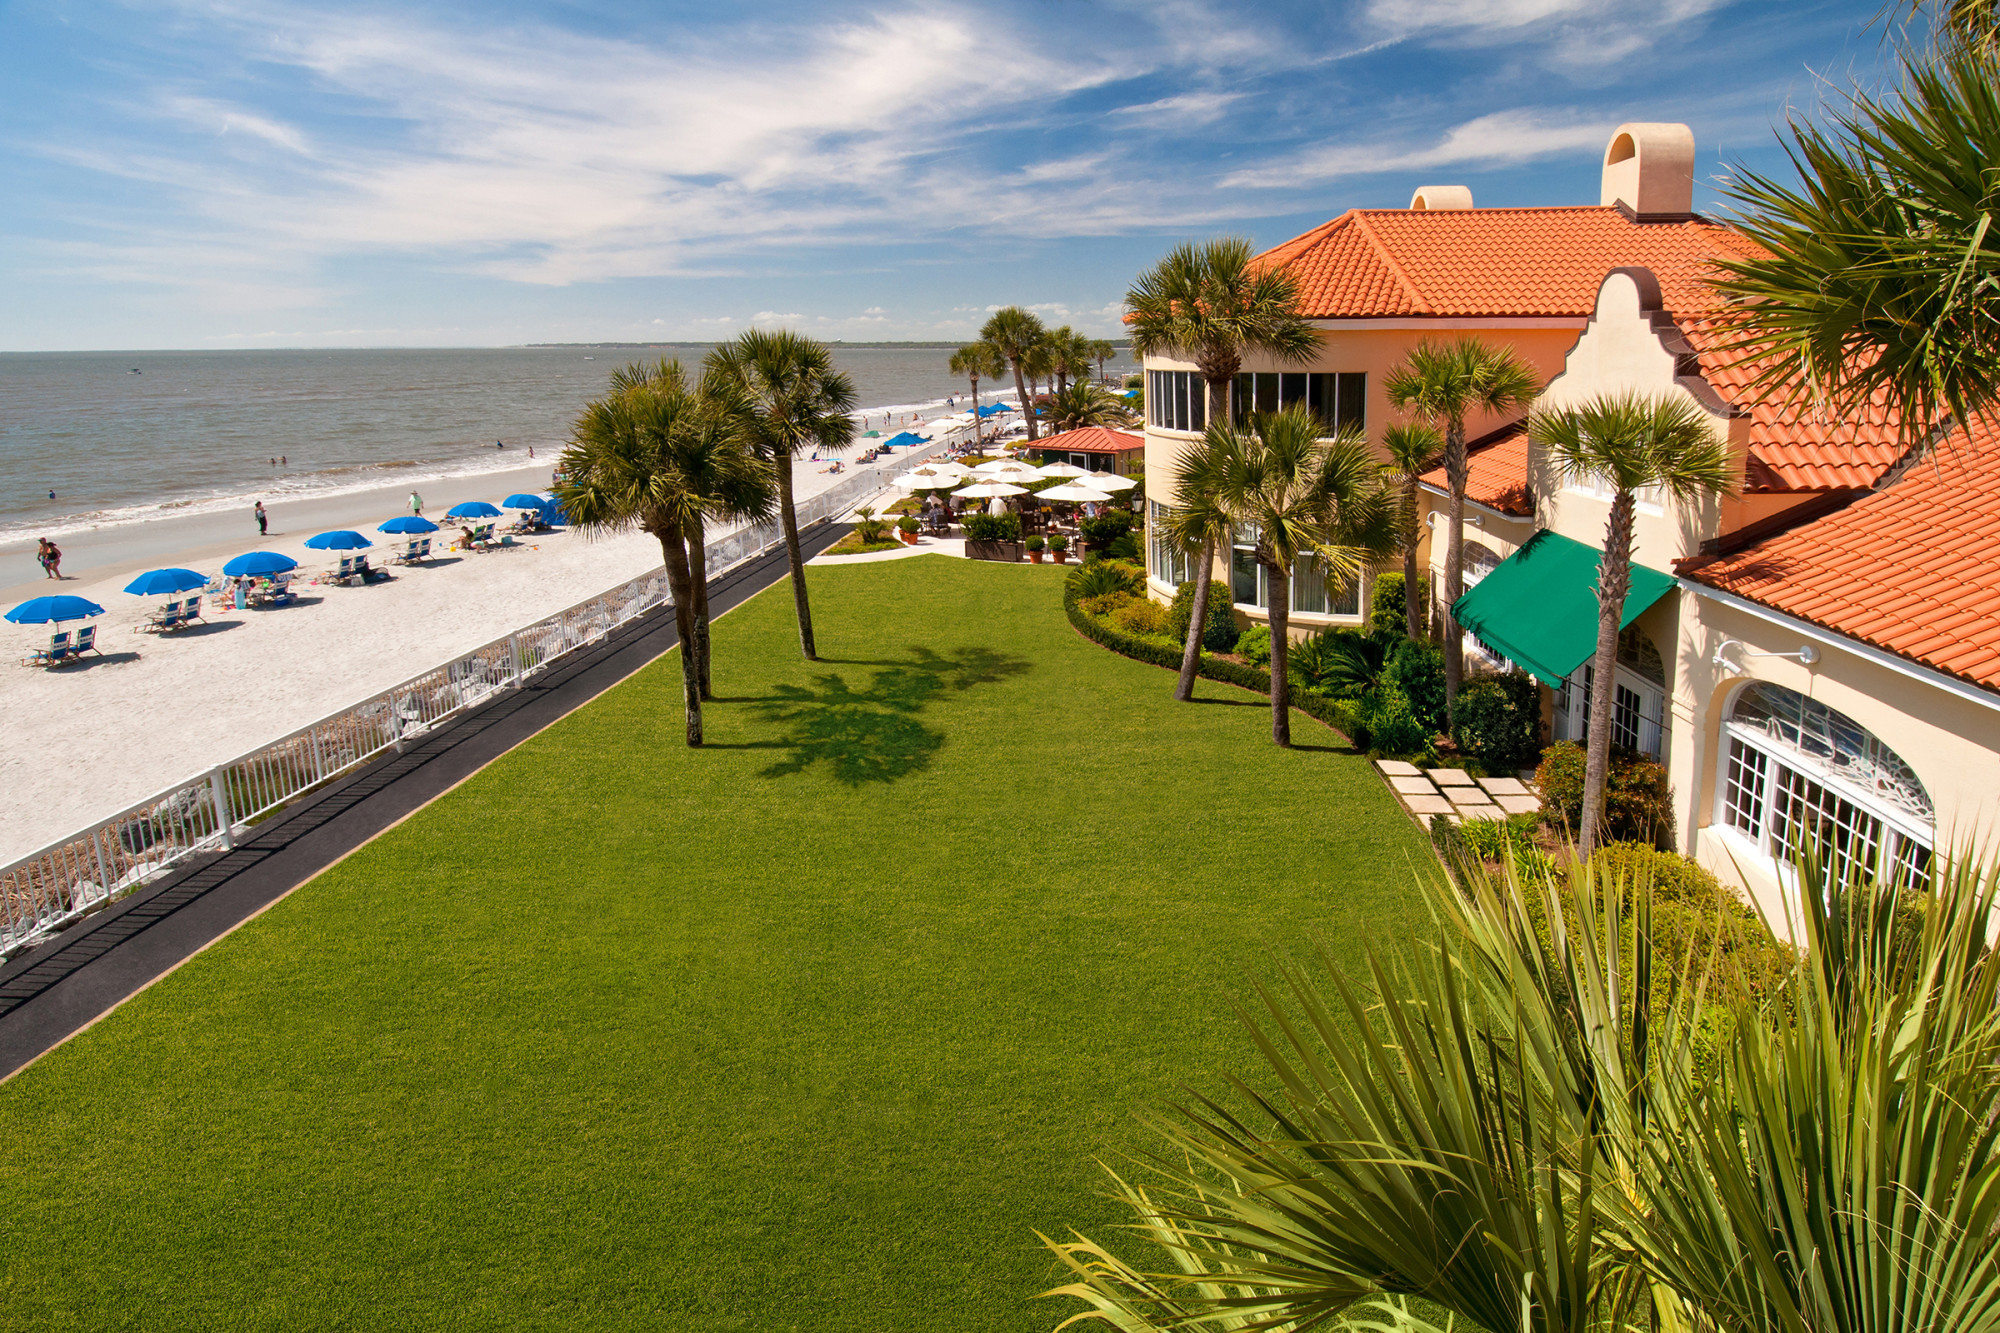 7 Popular Places To Stay On St. Simons Island